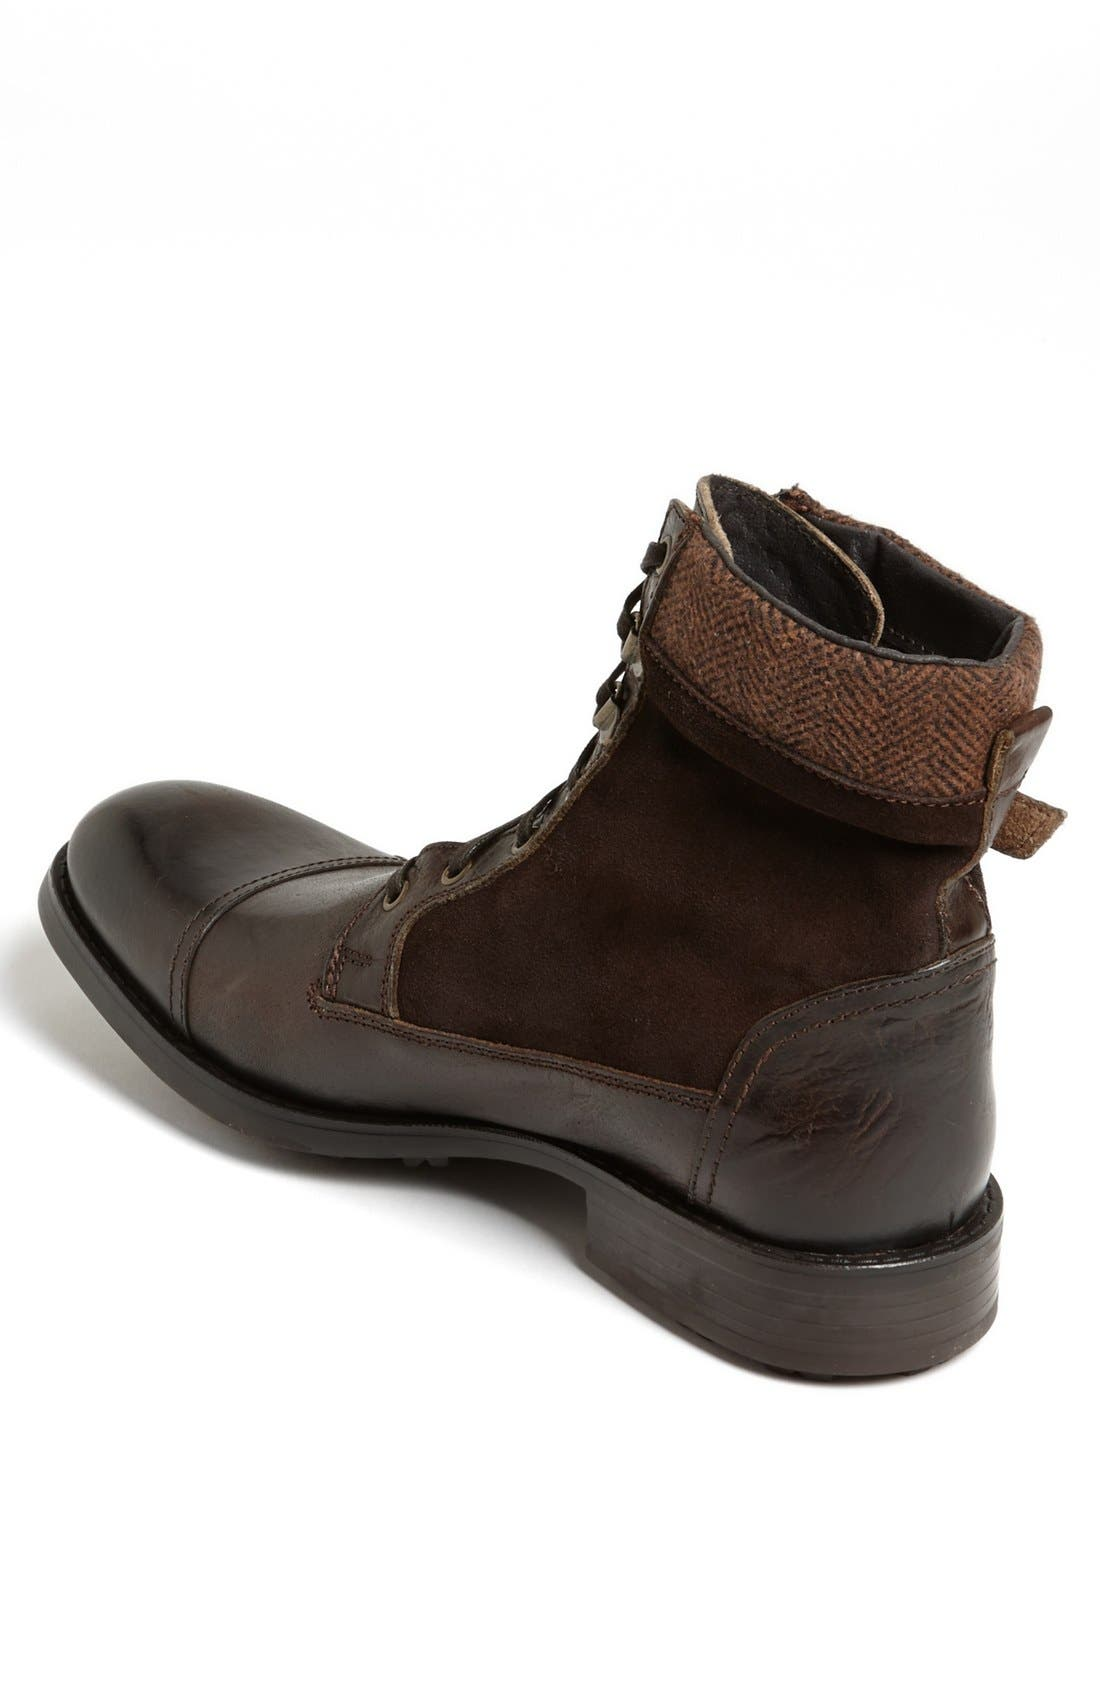 Alternate Image 2  - ZIGIny 'Bravo' Cap Toe Boot